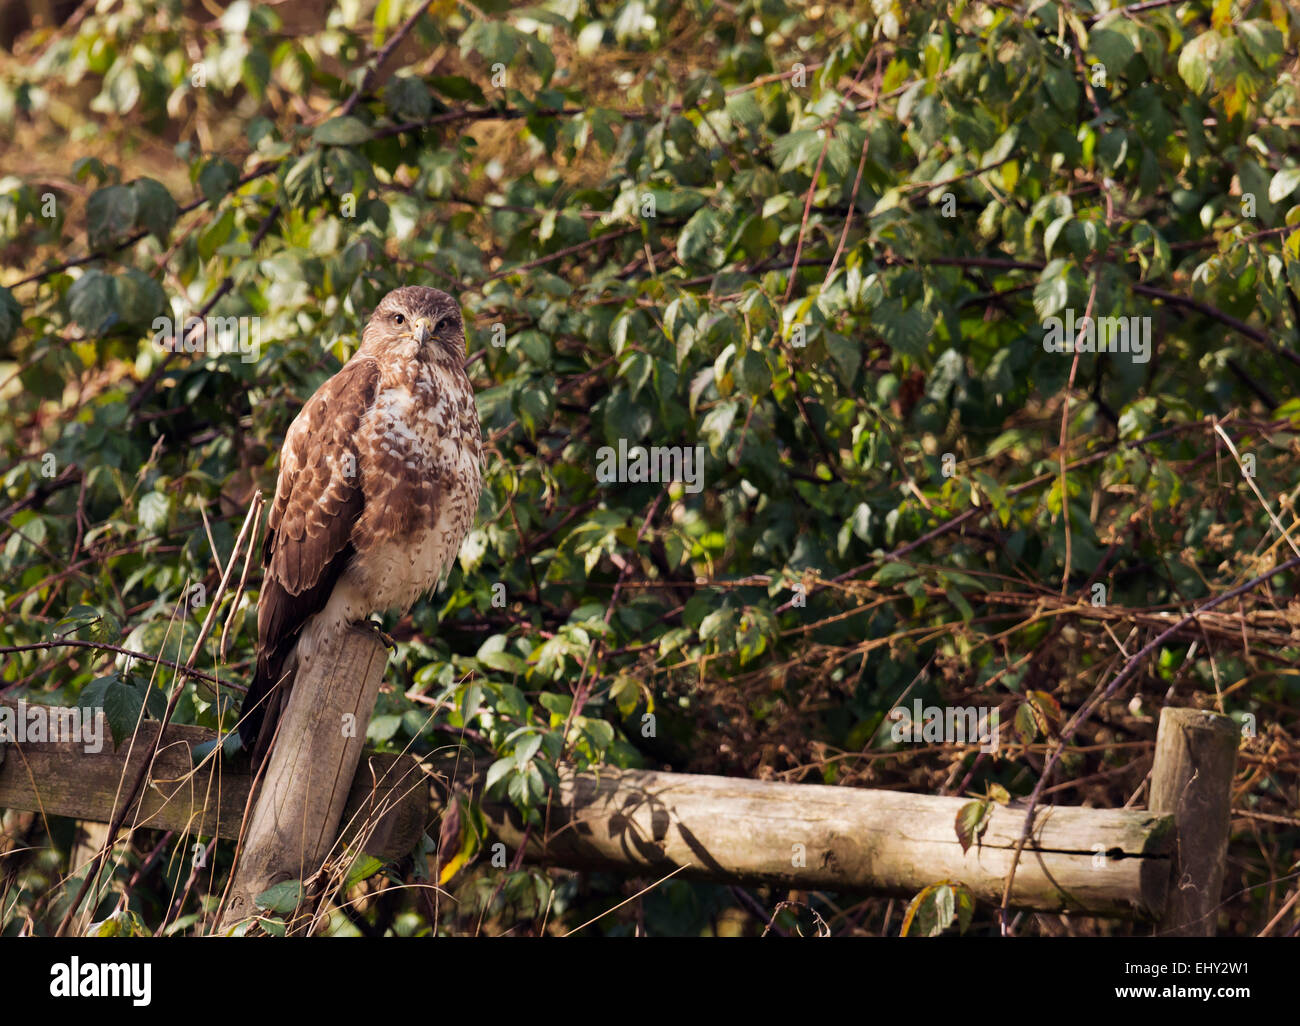 Wild Common Buzzard, Buteo buteo perched on fence post on edge of woodland - Stock Image